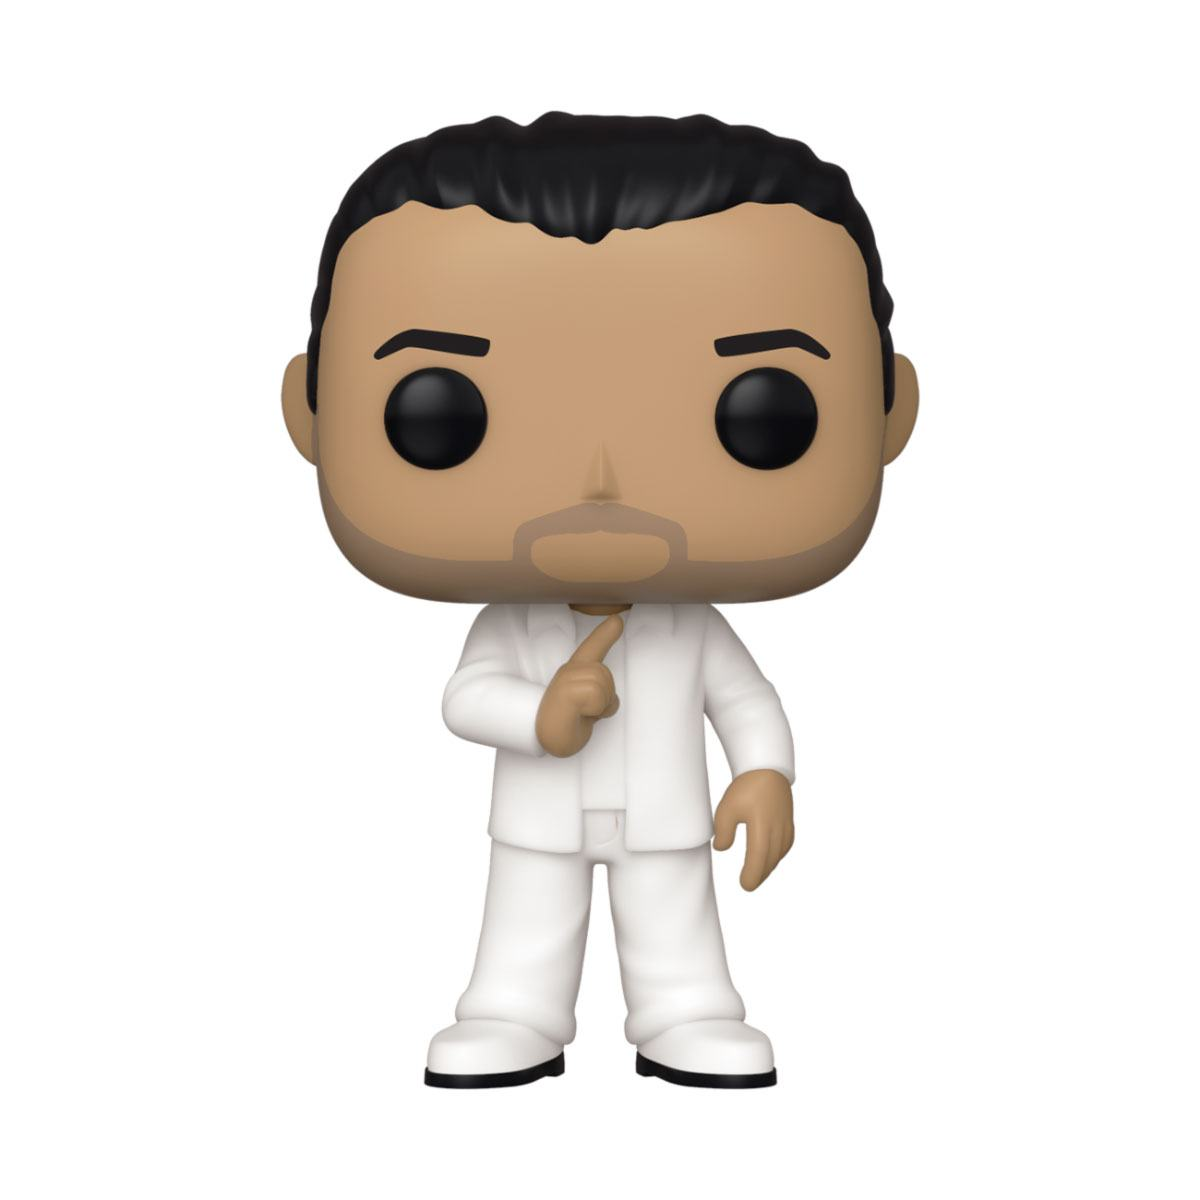 Backstreet Boys POP! Rocks Vinyl Figure Howie Dorough 9 cm